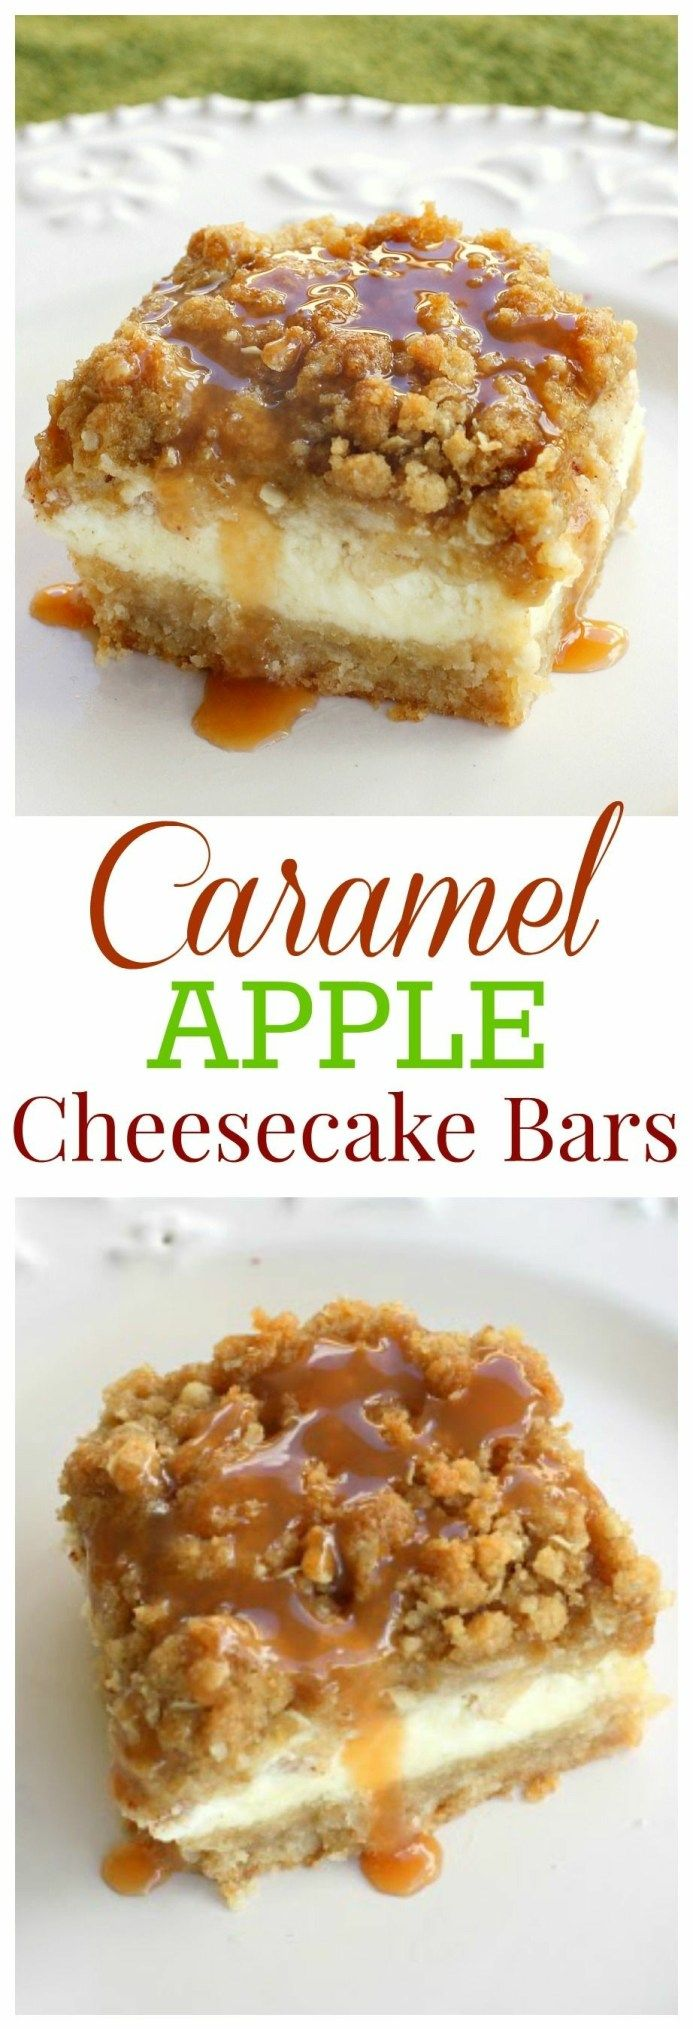 Caramel Apple Cheesecake Bars | The Girl Who Ate Everything